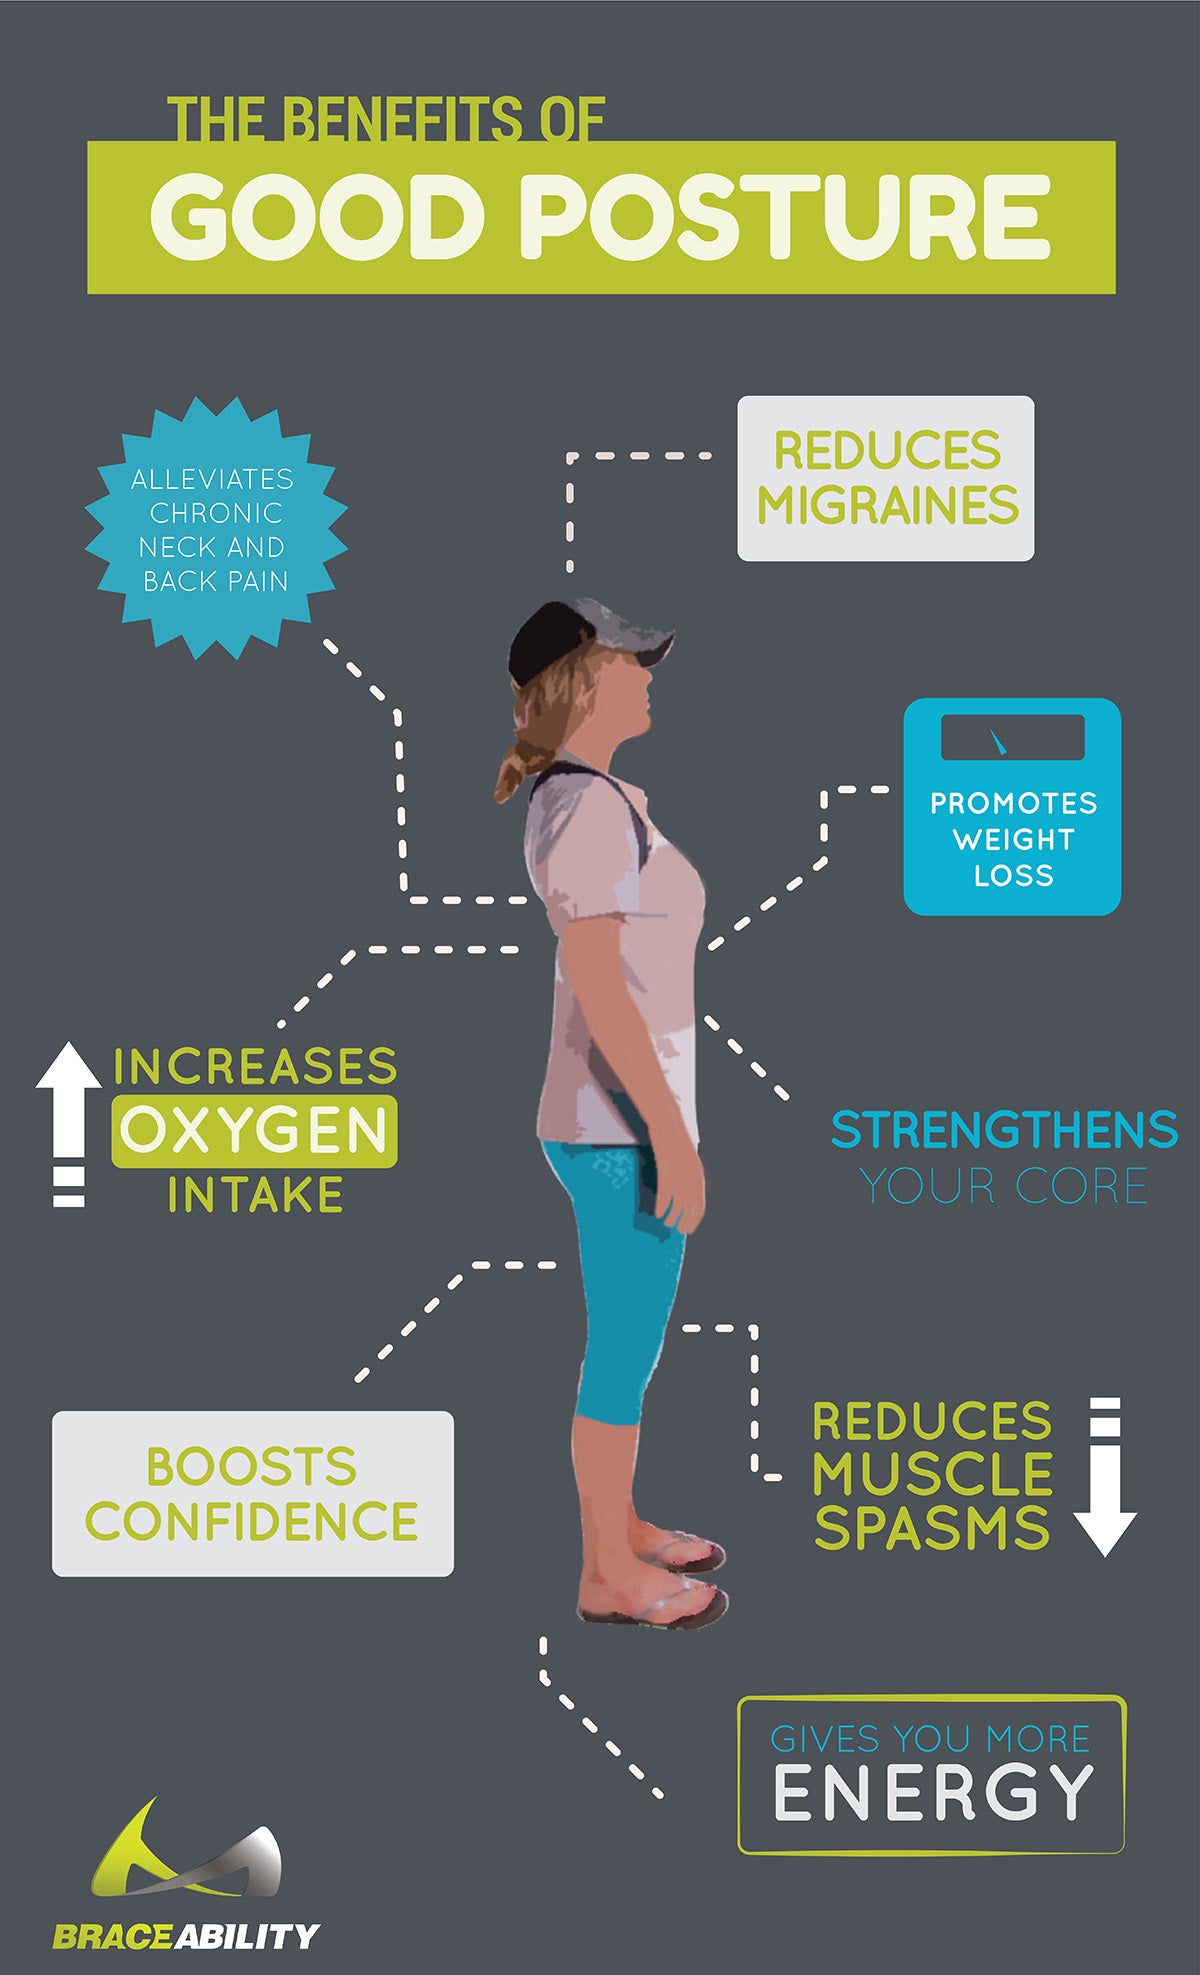 Infographic of he benefits of good posture and how a posture brace can reduce neck and back pain